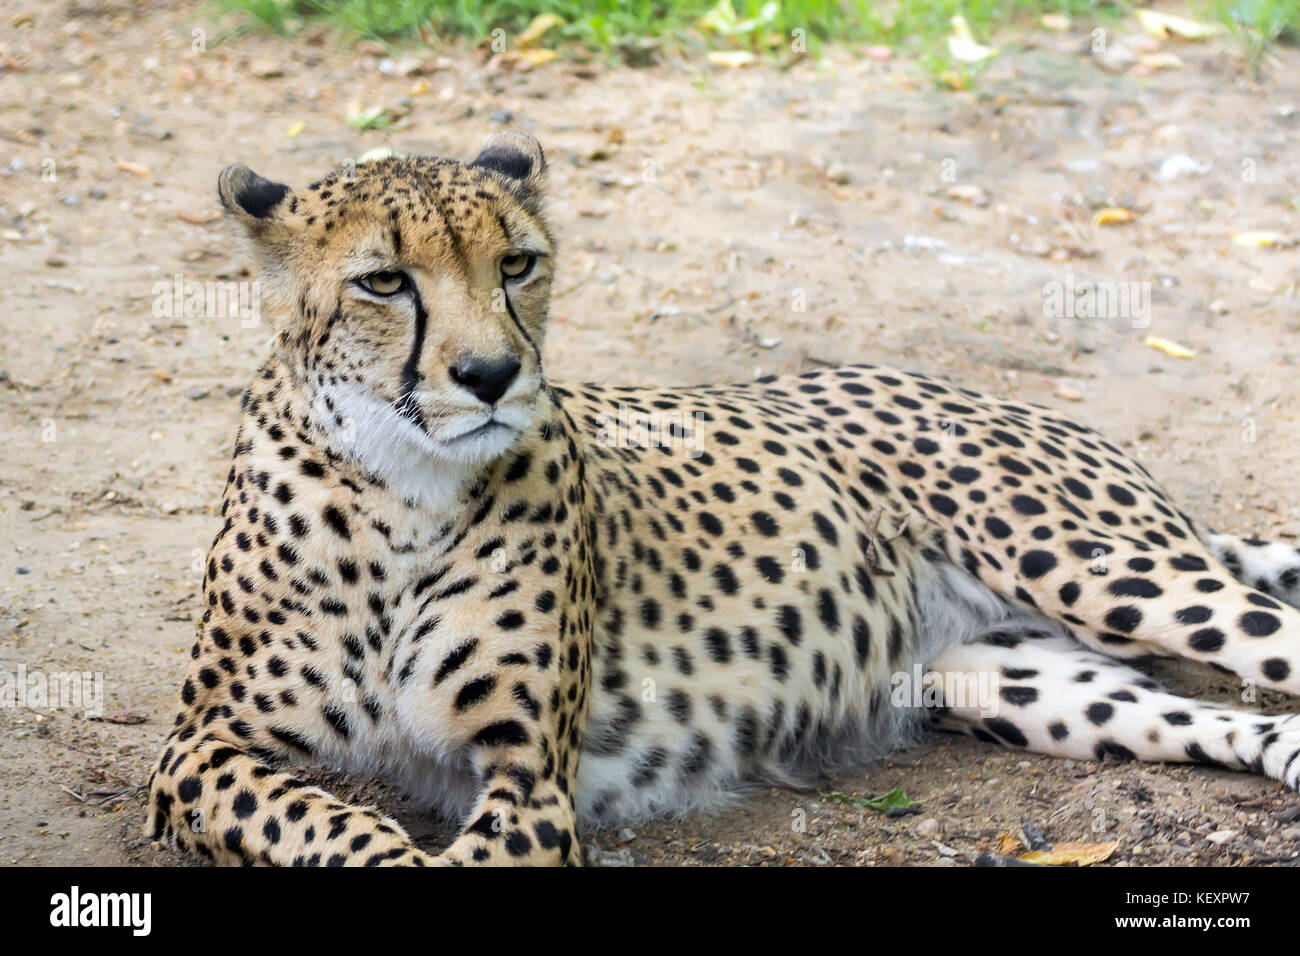 a large portrait of a cheetah, shot from a long distance, - Stock Image